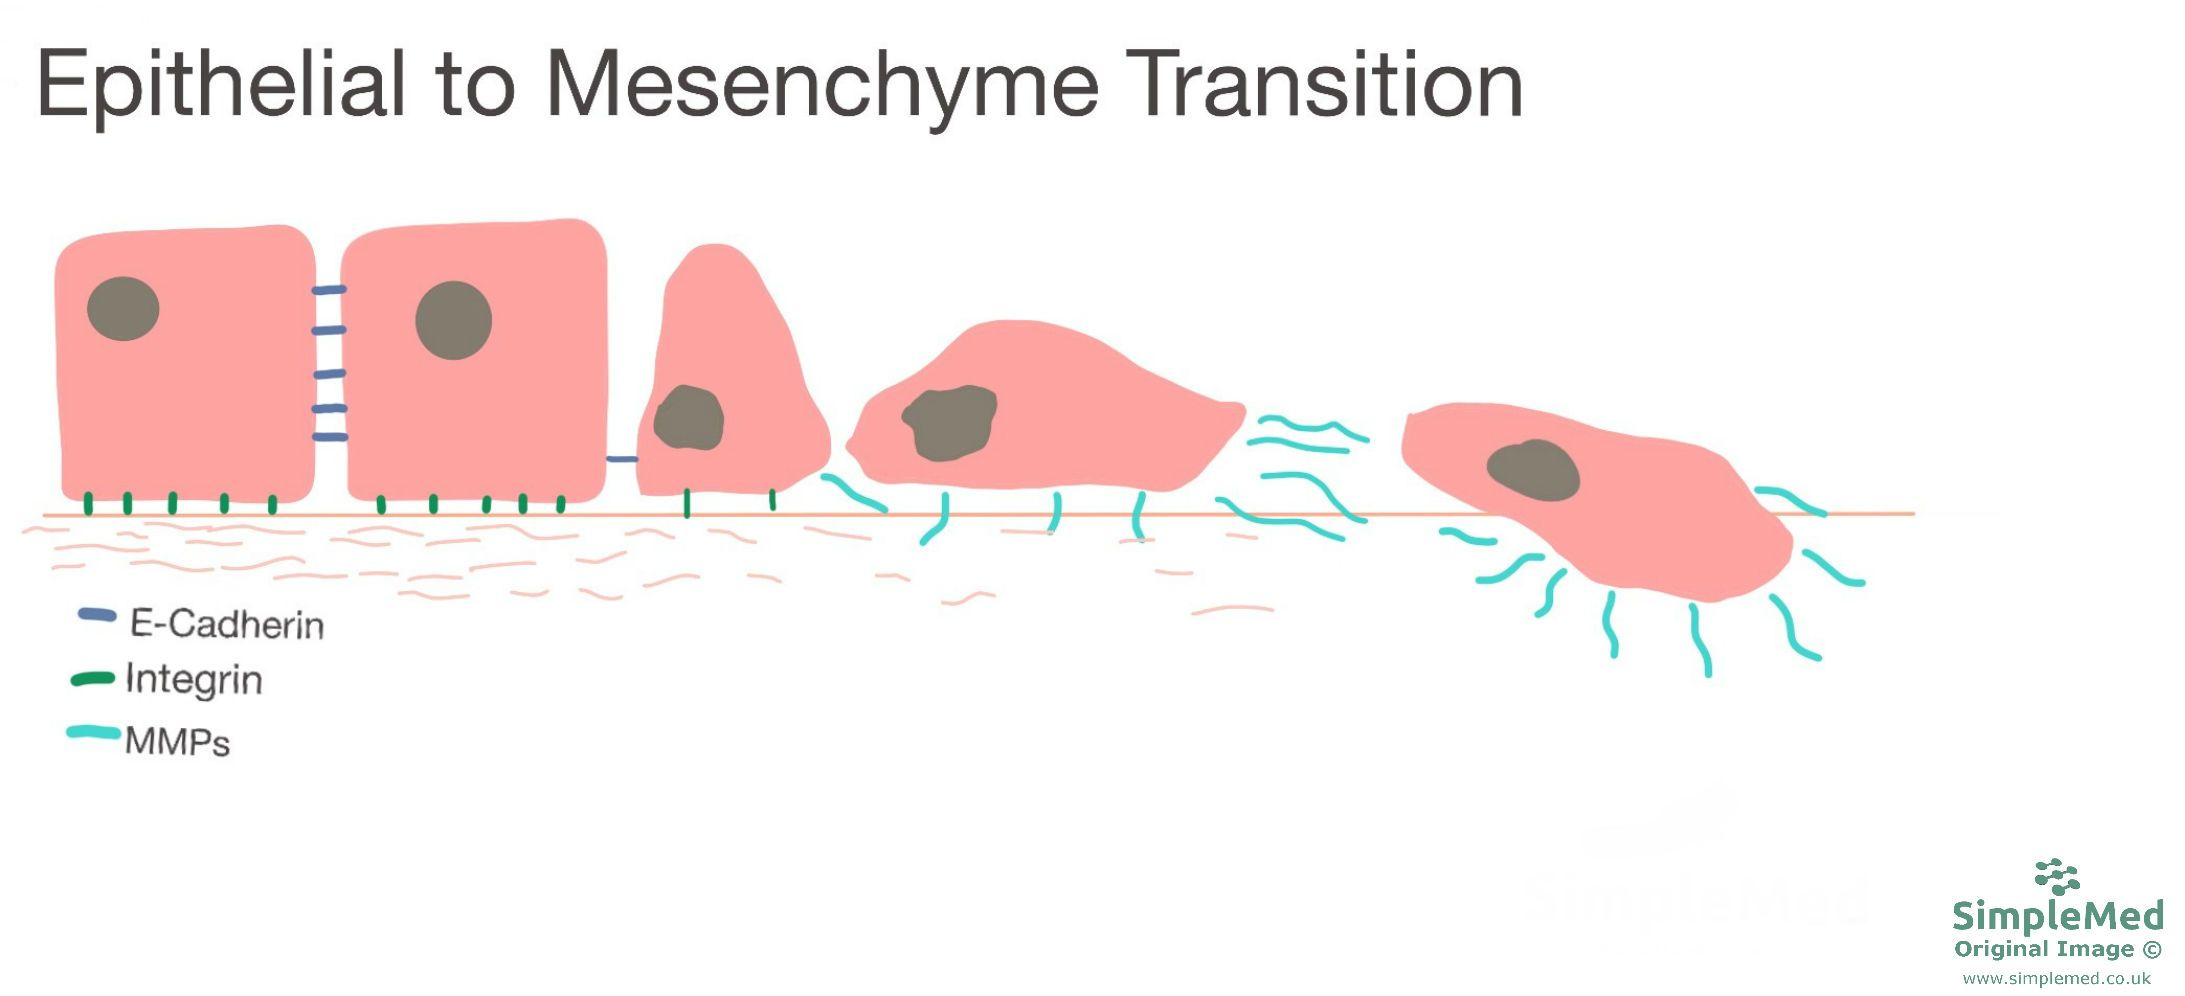 Epithelial to Mesenchyme Transition SimpleMed